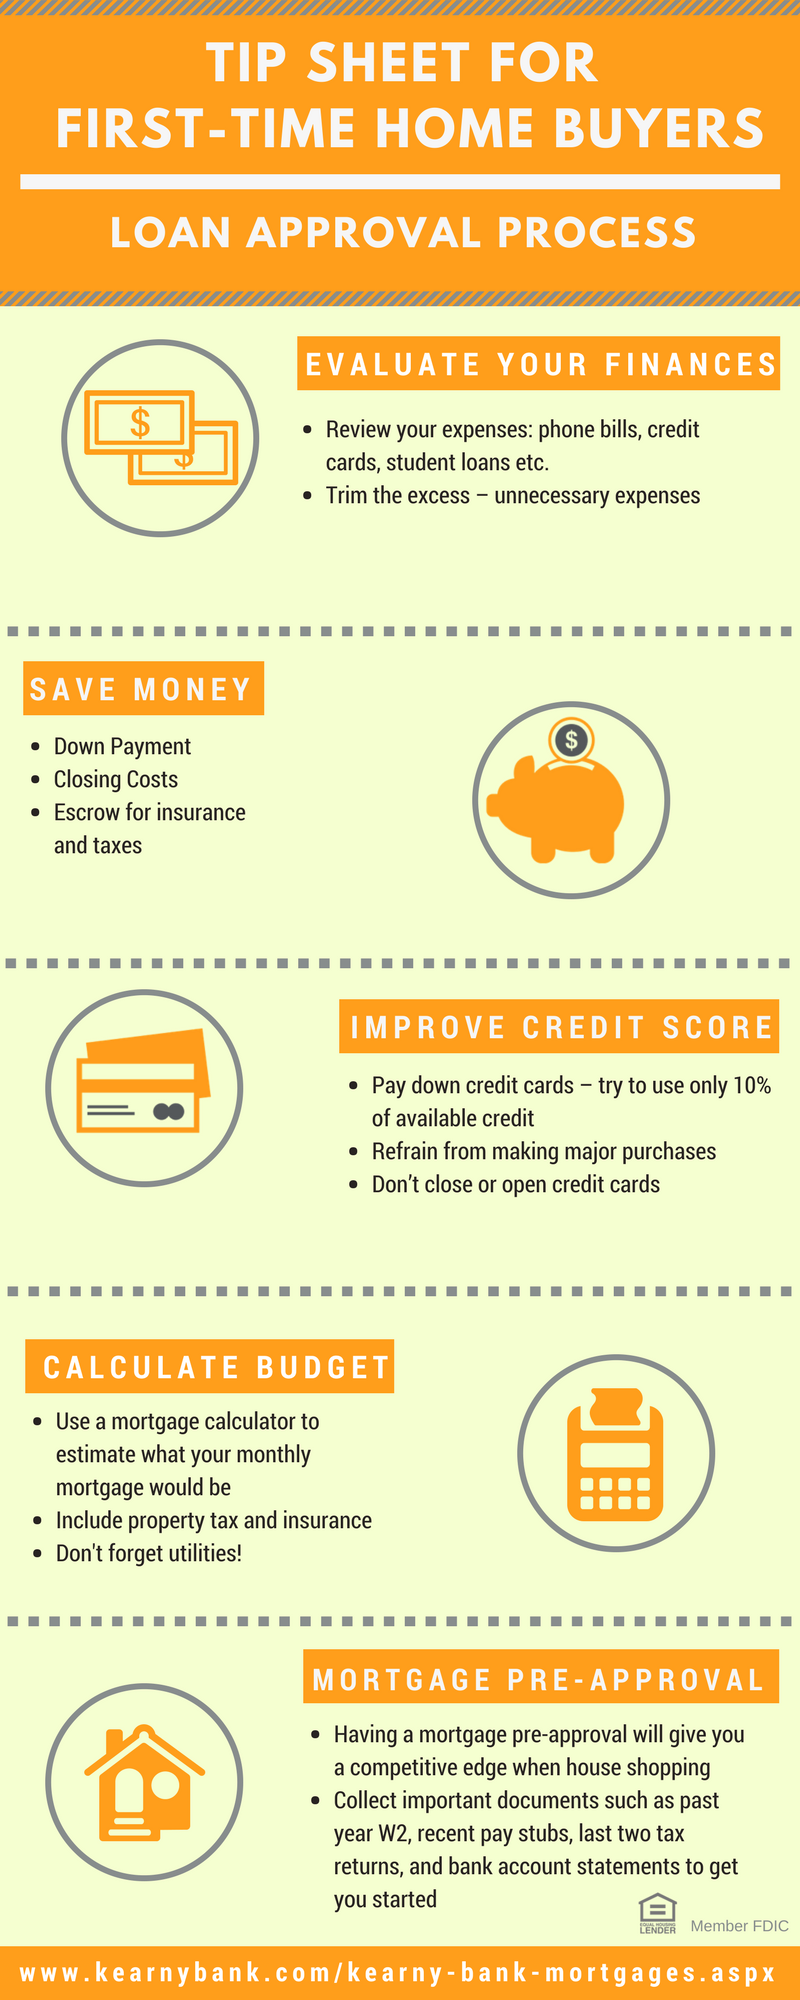 First Time Buying A Home Familiarize Yourself With The Loan Process First Improve Credit Score Improve Credit First Time Home Buyers